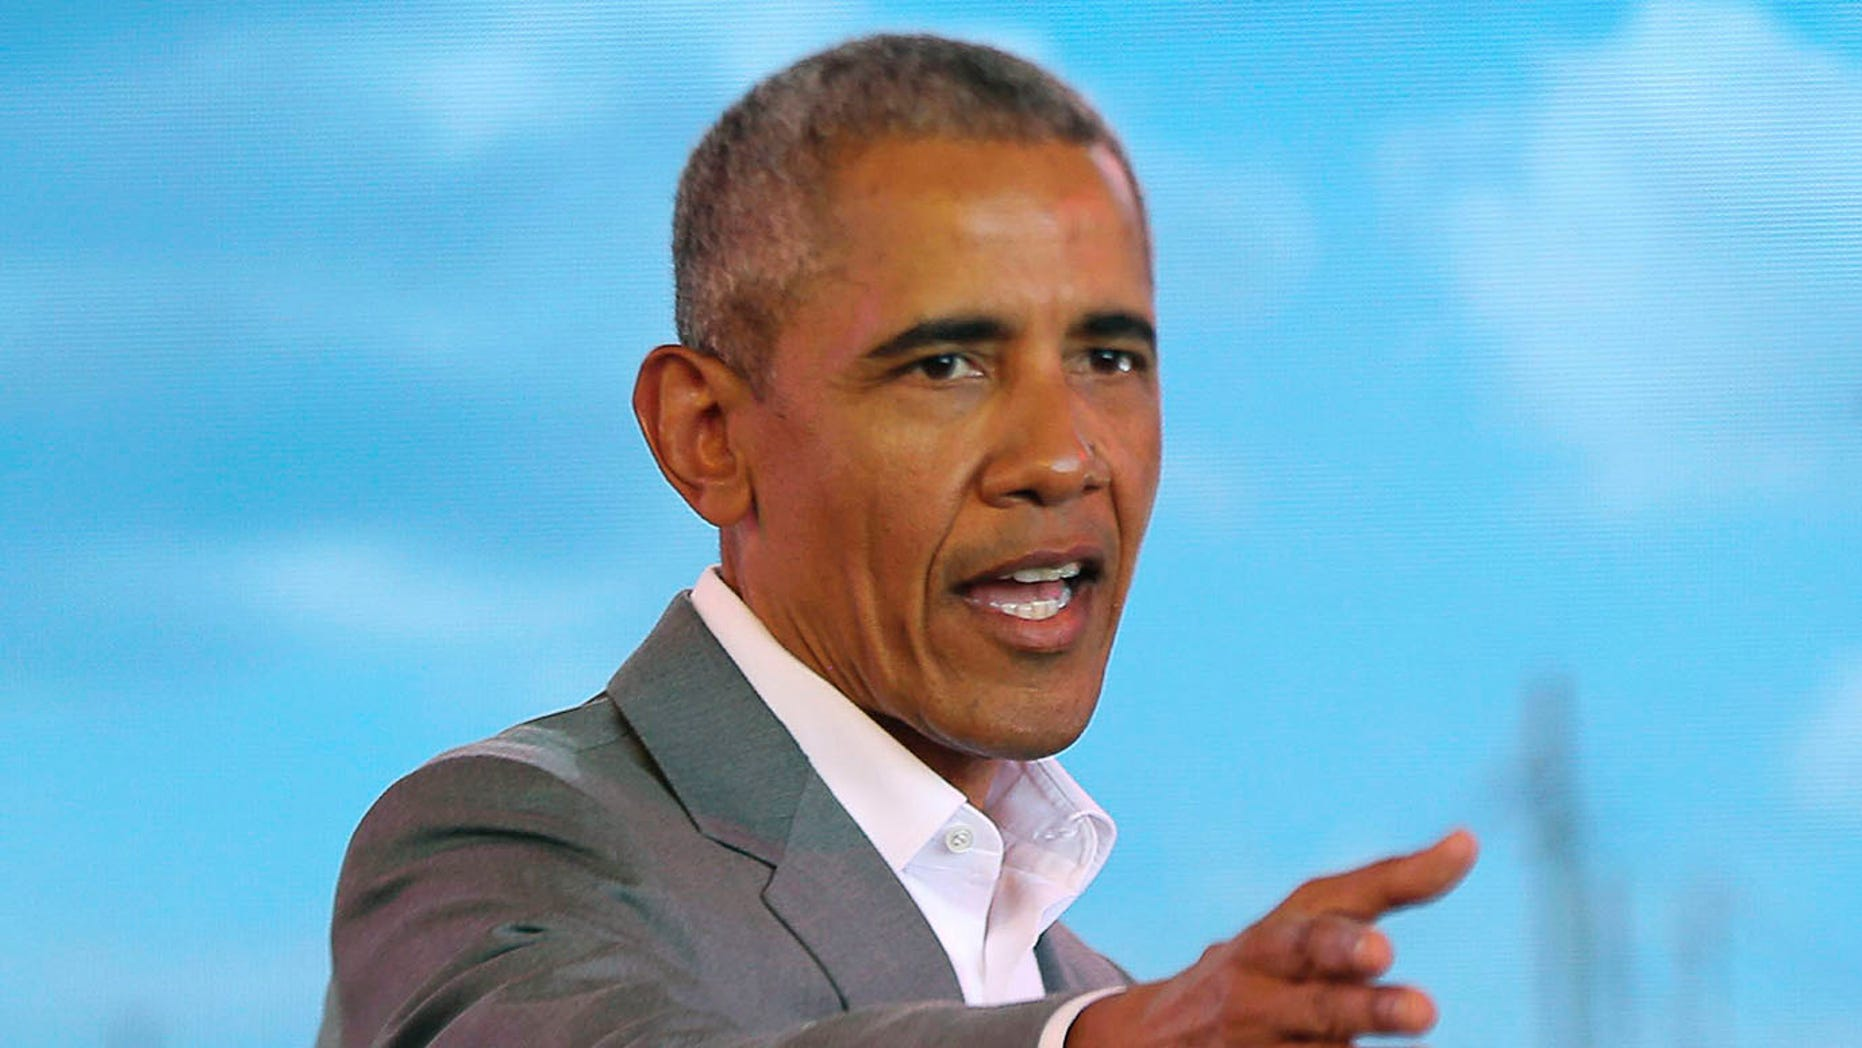 Former US President Barack Obama gestures to the crowd, during an event in Kogelo, Kisumu, Kenya, Monday, July 16, 2018. Obama is in Kenya to launch a sports and training center founded by his half-sister, Auma Obama. (